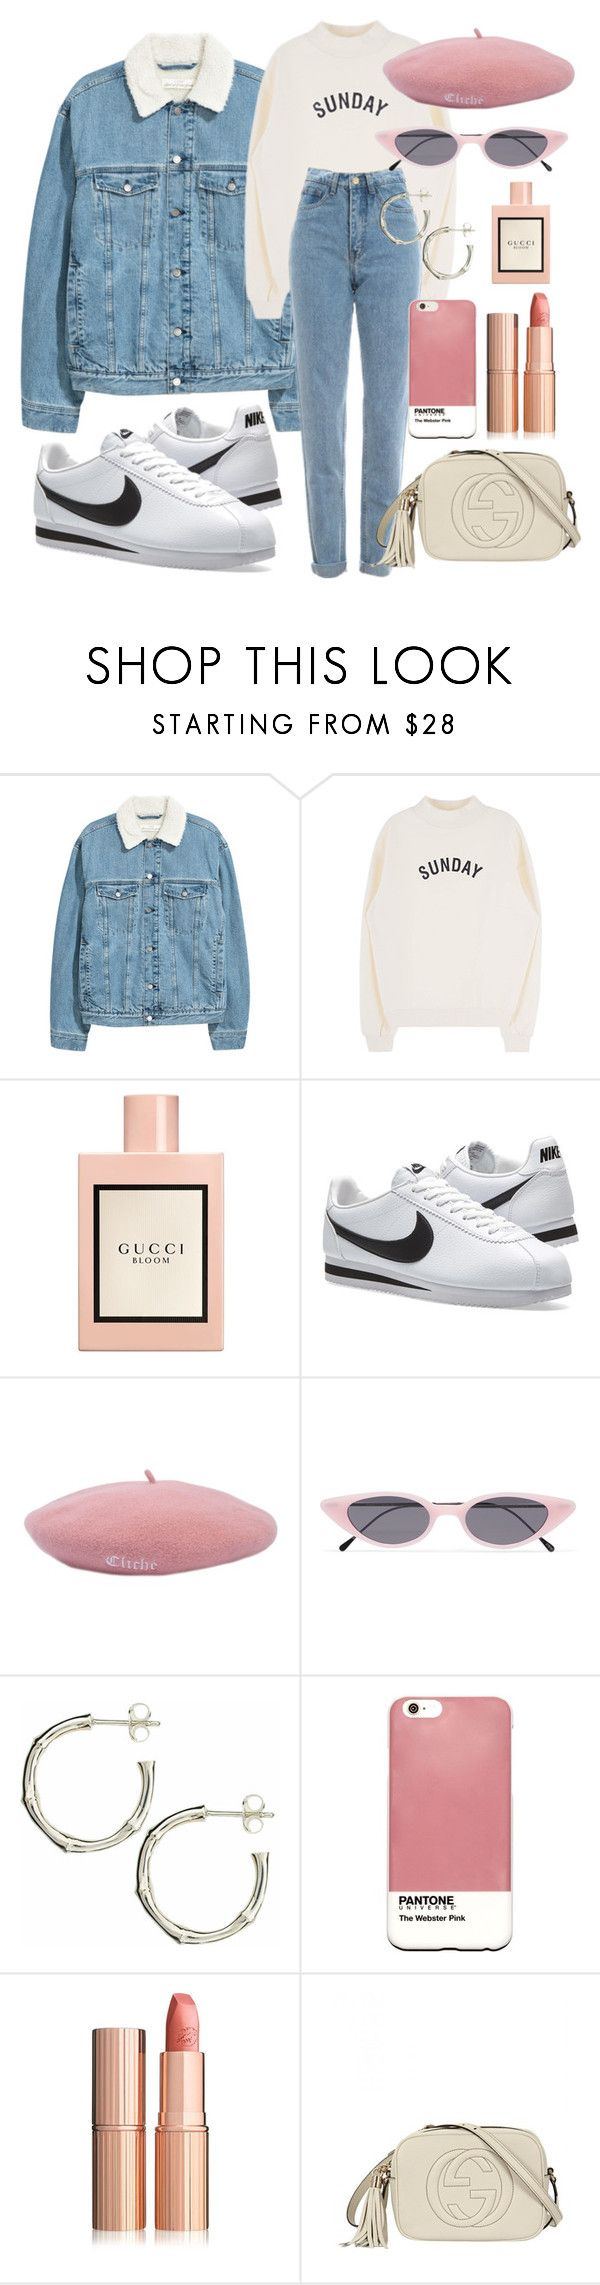 """""""Untitled #95"""" by littlevanss ❤ liked on Polyvore featuring Gucci, WALL, NIKE, Illesteva, Dinny Hall, Case Scenario and pastelsweaters"""